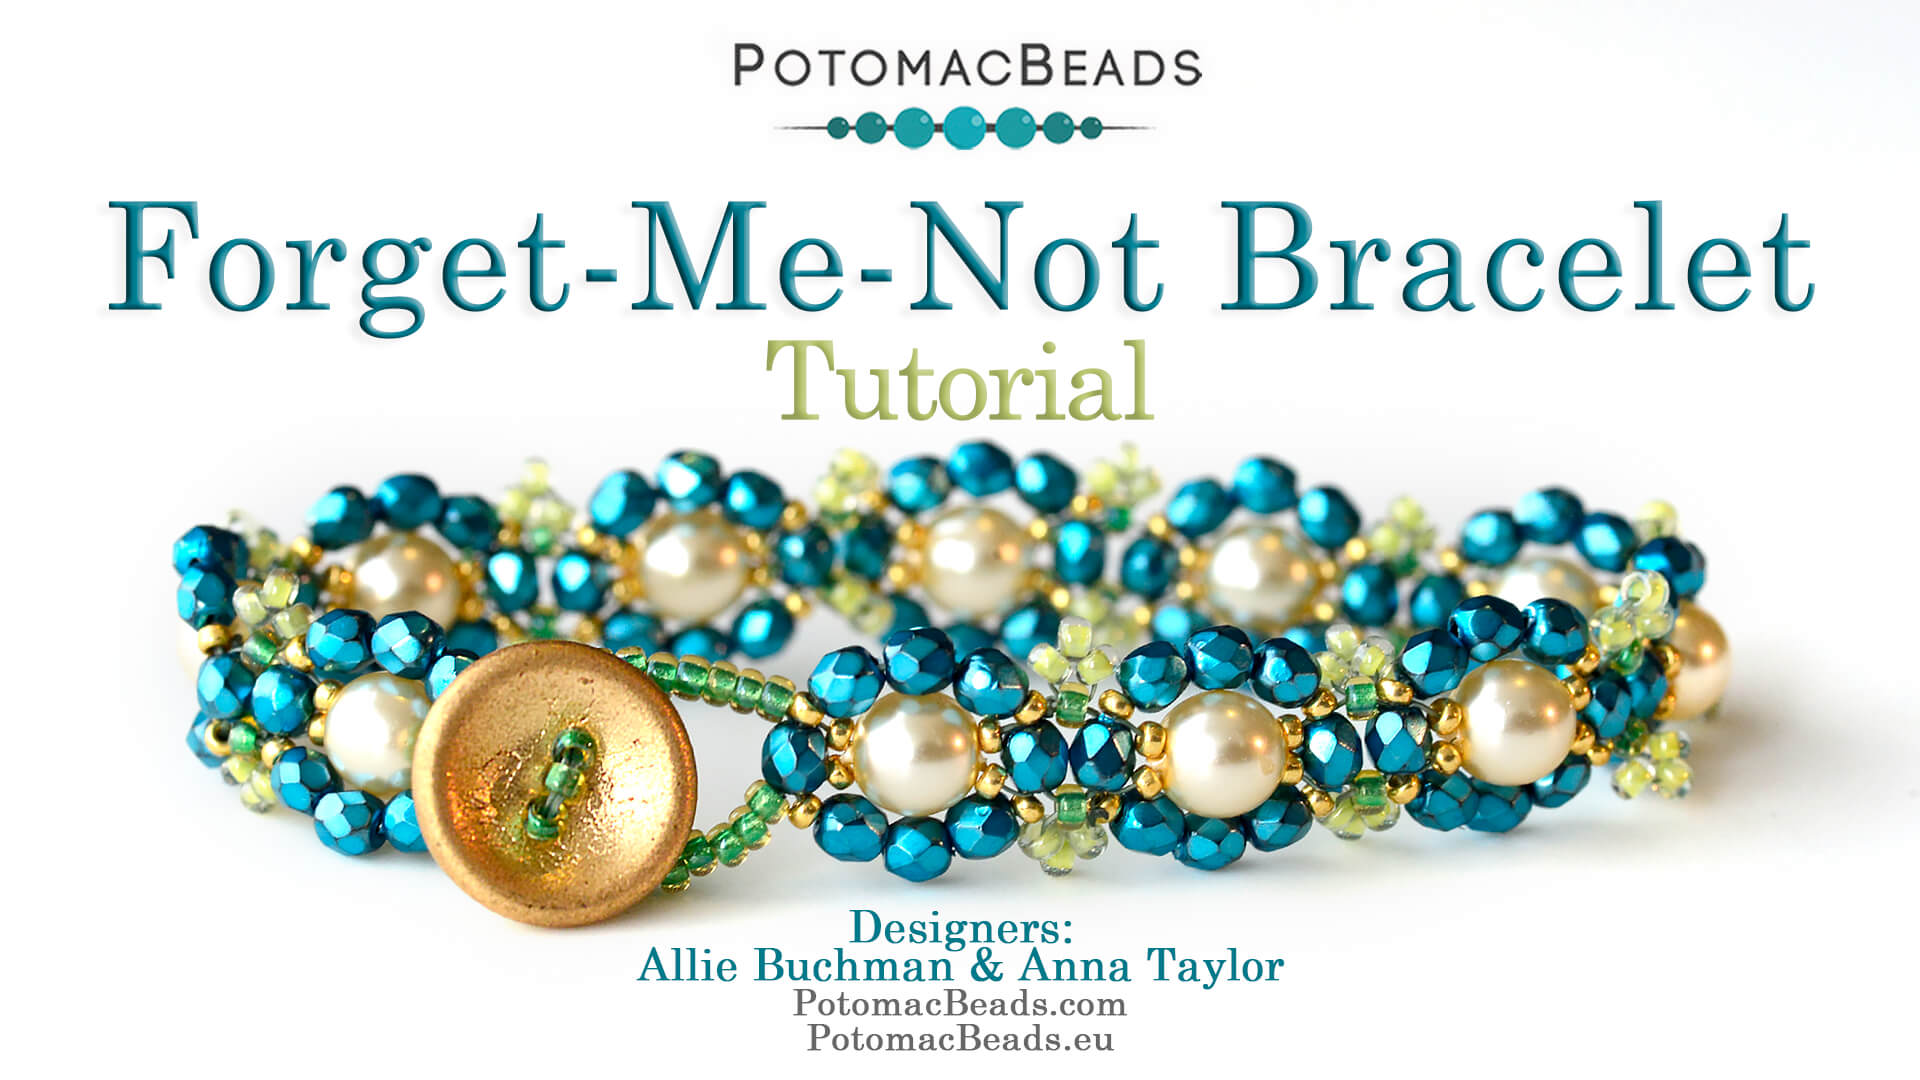 How to Bead Jewelry / Videos Sorted by Beads / Pearl Videos (Czech, Freshwater, Potomac Pearls) / Forget-Me-Not-Bracelet Tutorial